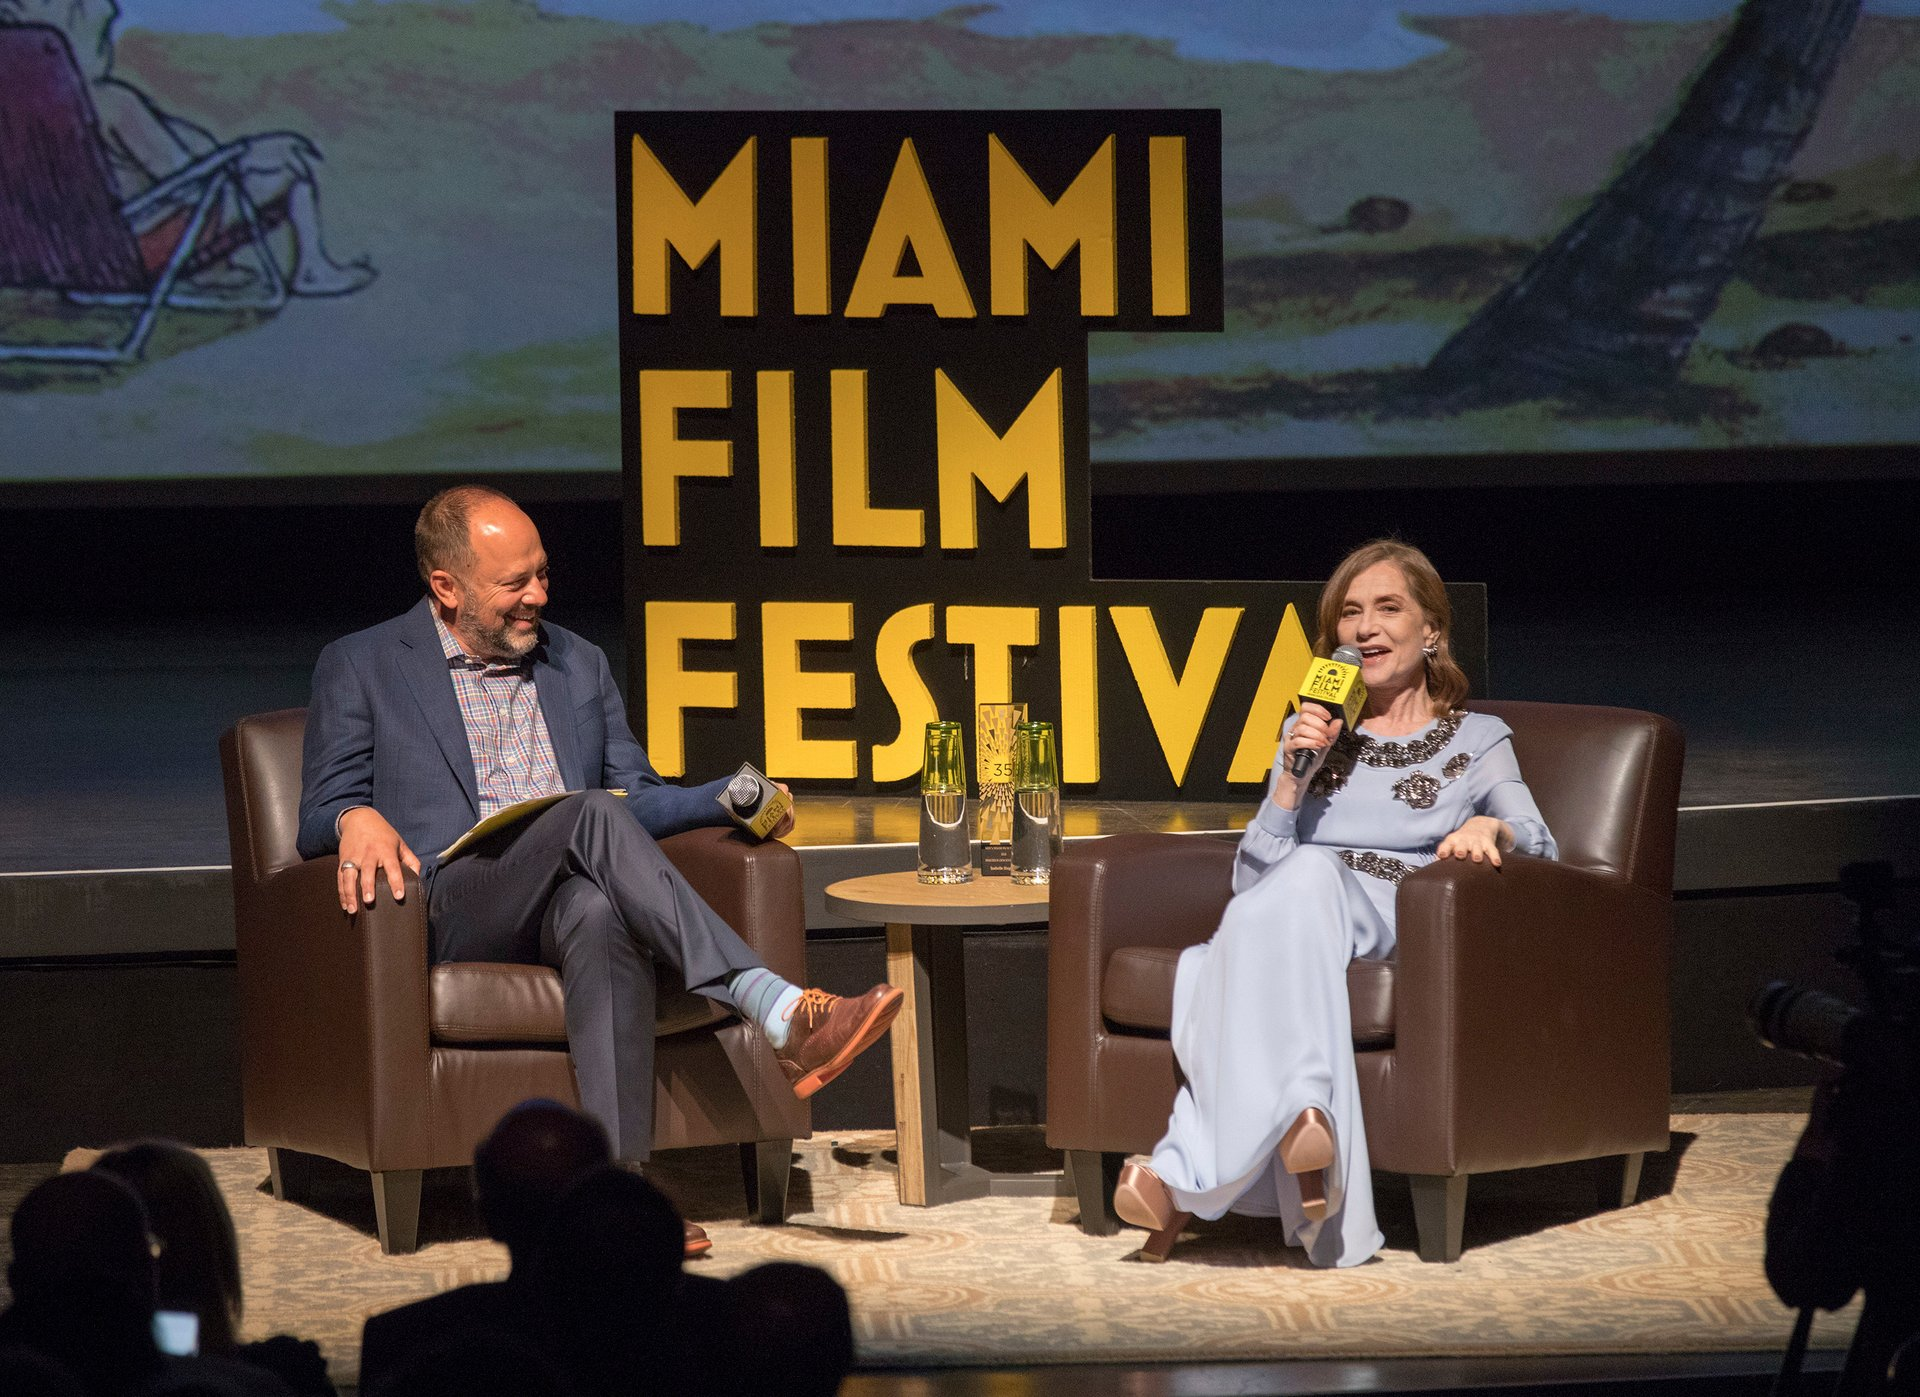 Miami Film Festival in Miami 2020 - Best Time